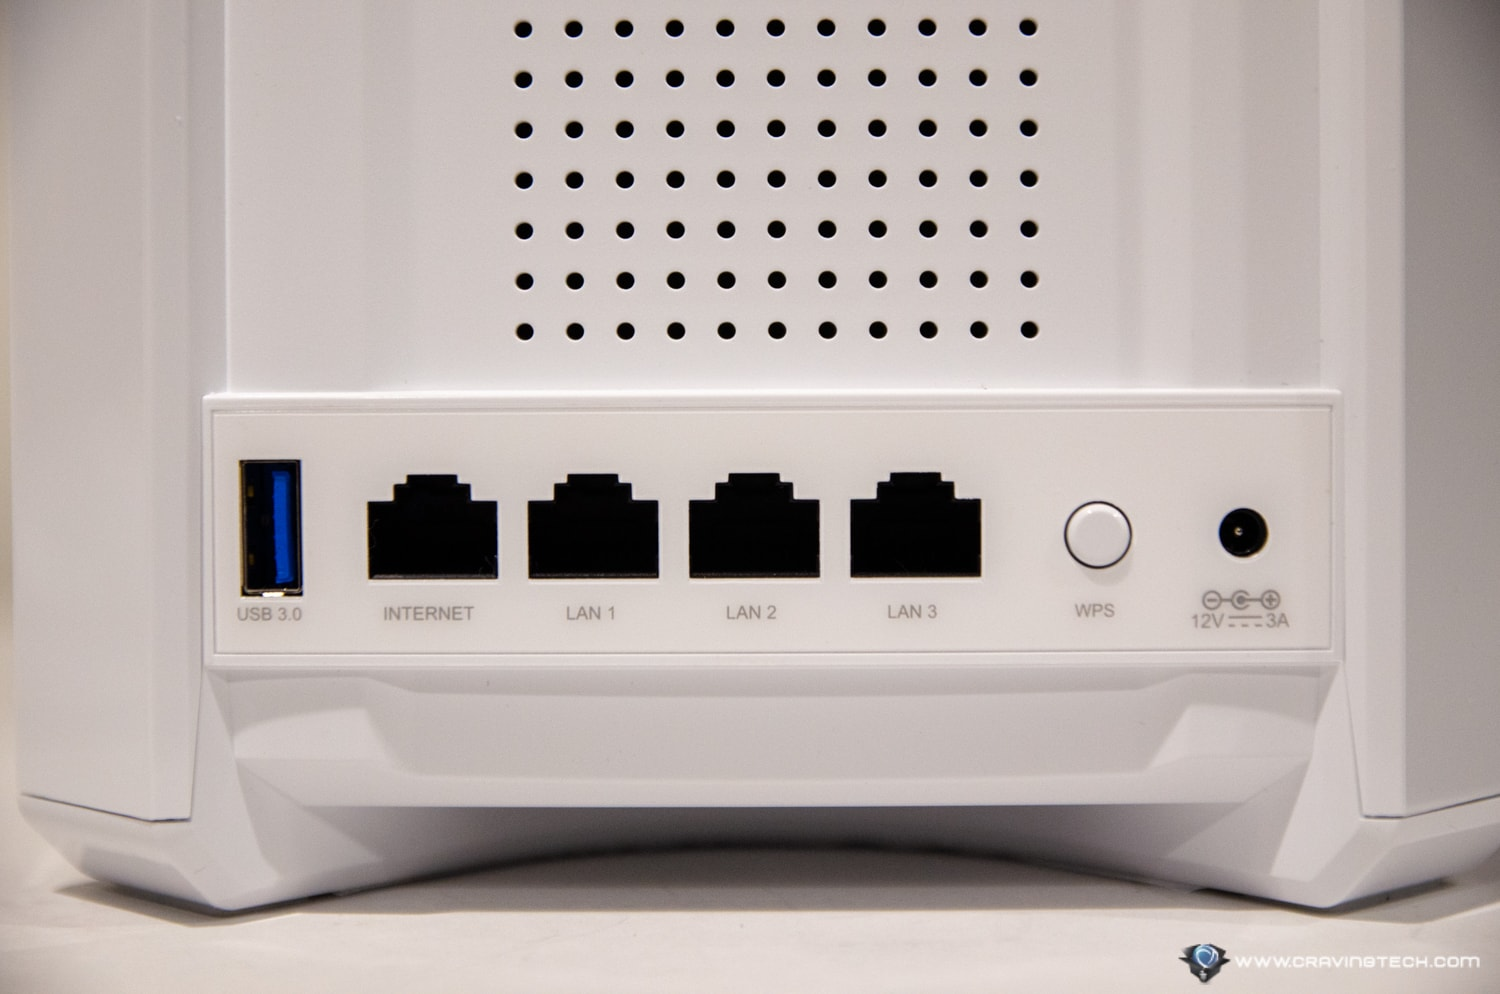 D-Link D-Fend Router Review Ports